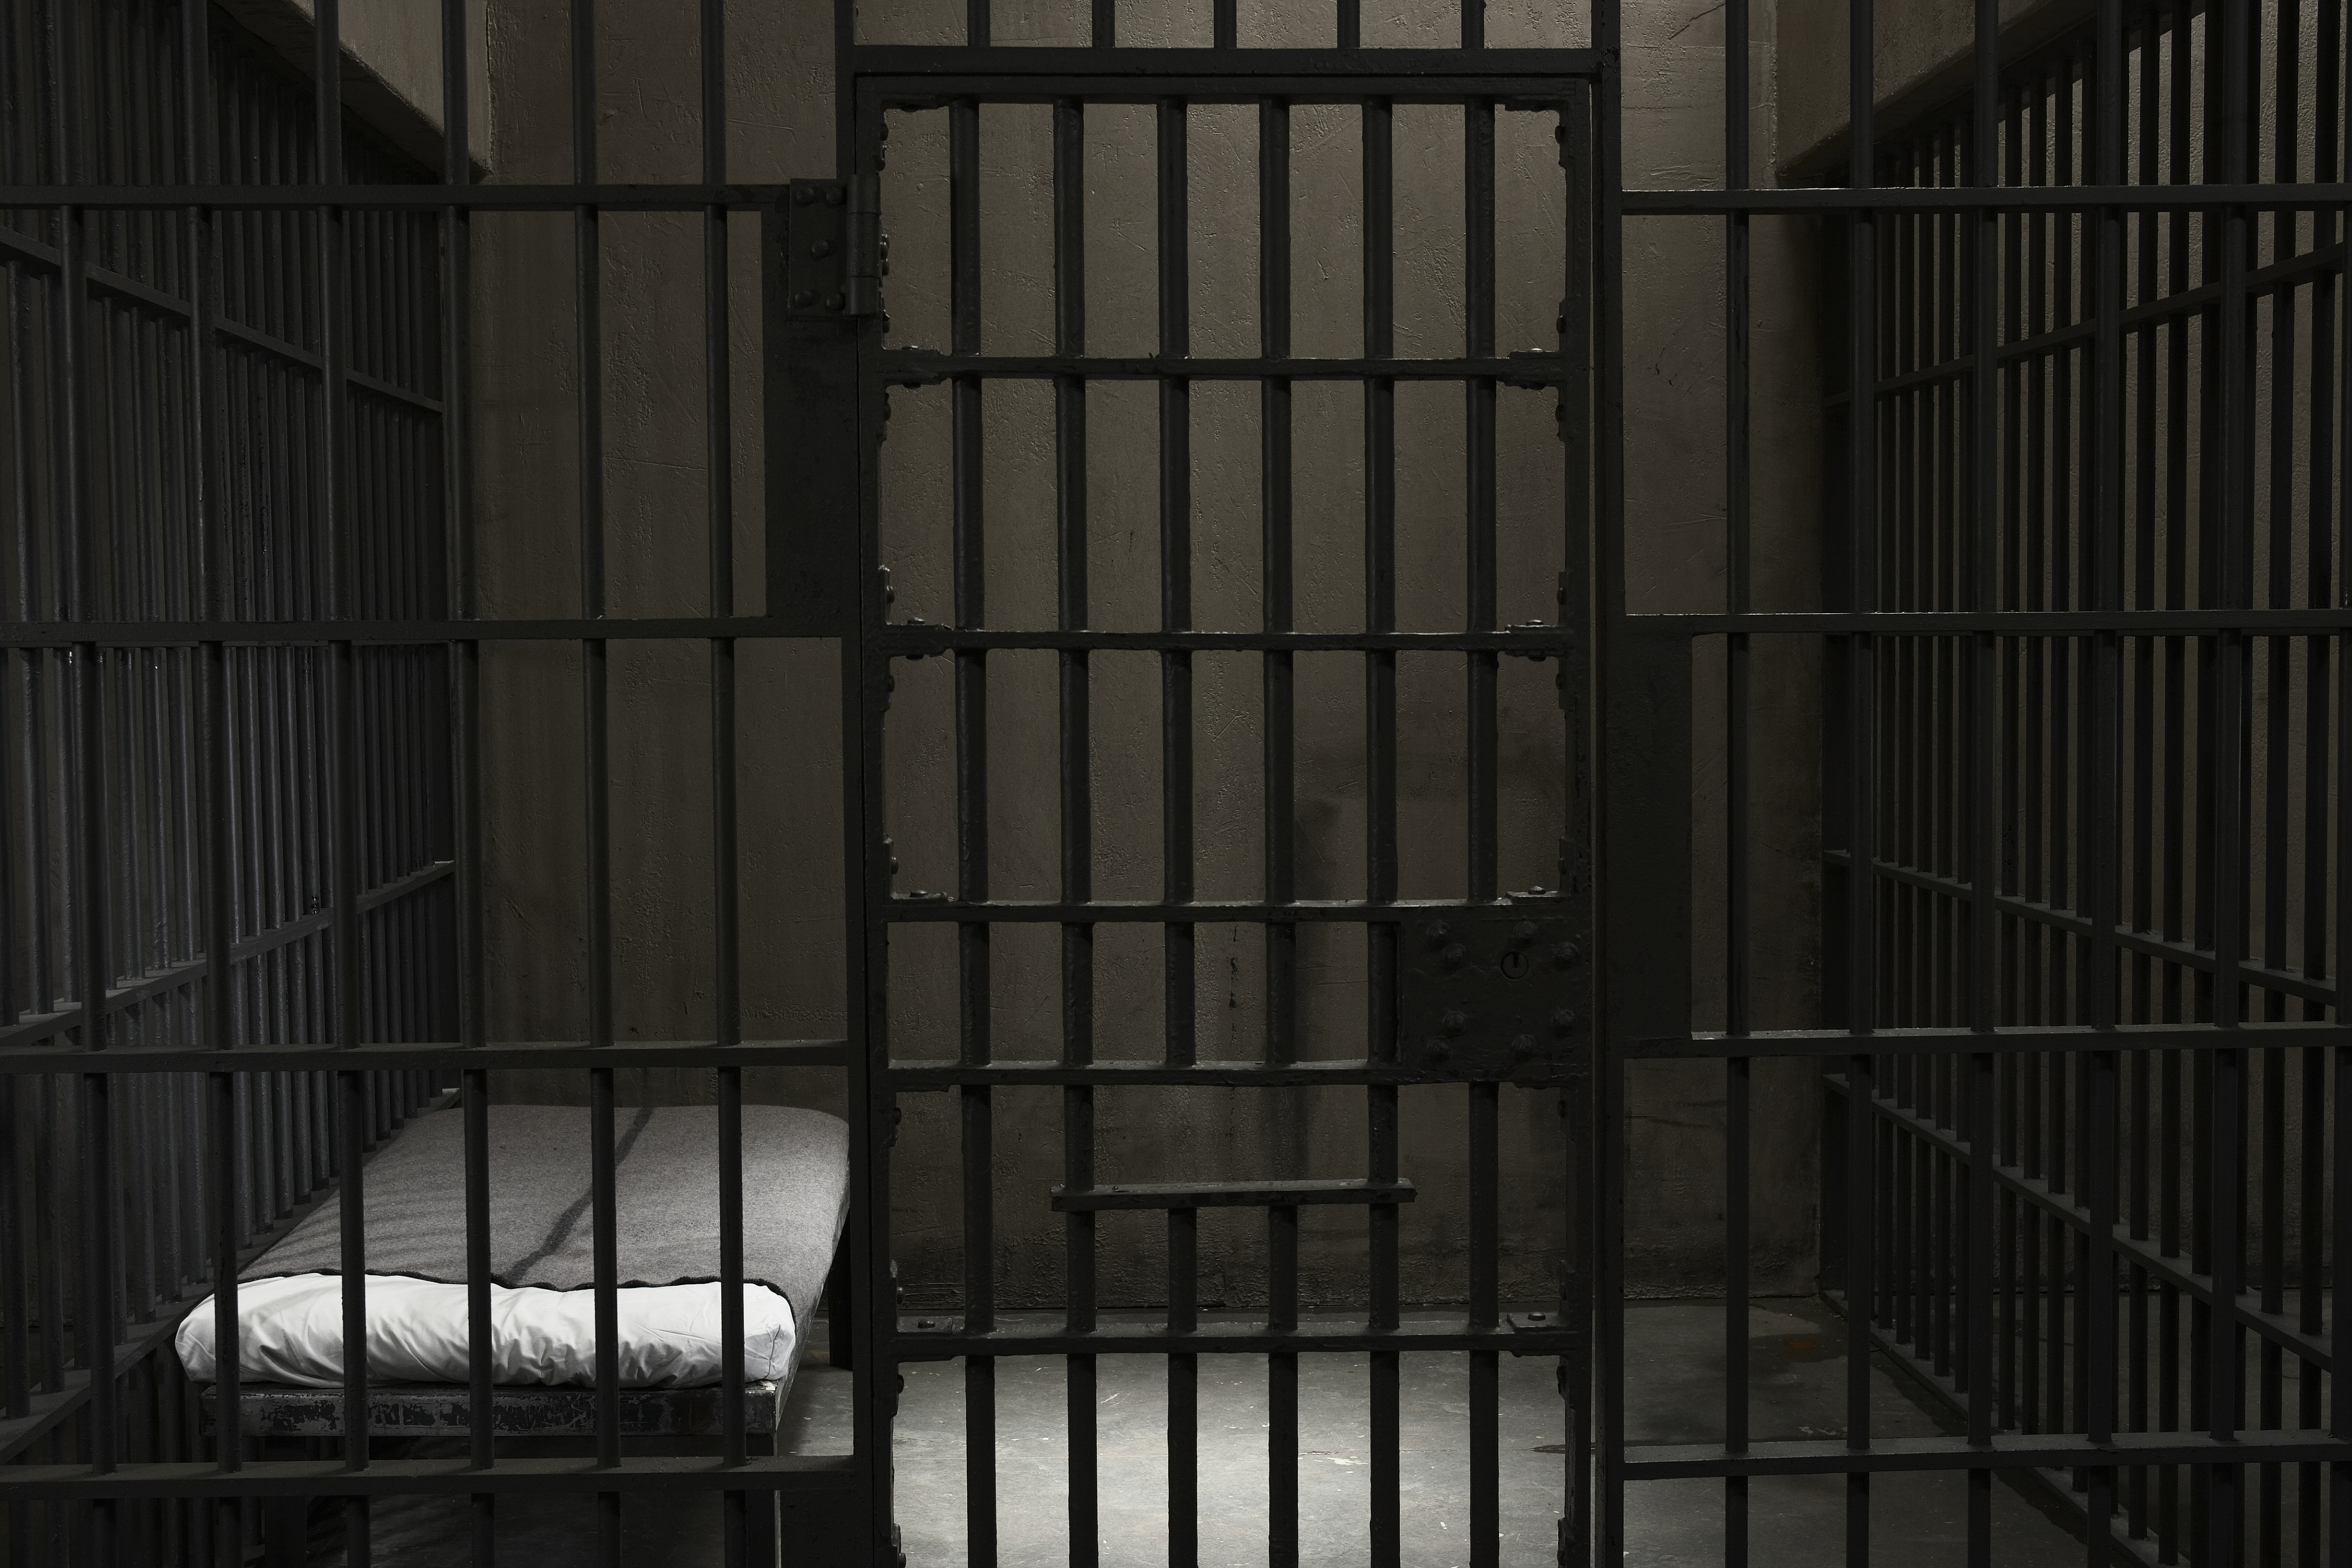 Safety and Incarceration